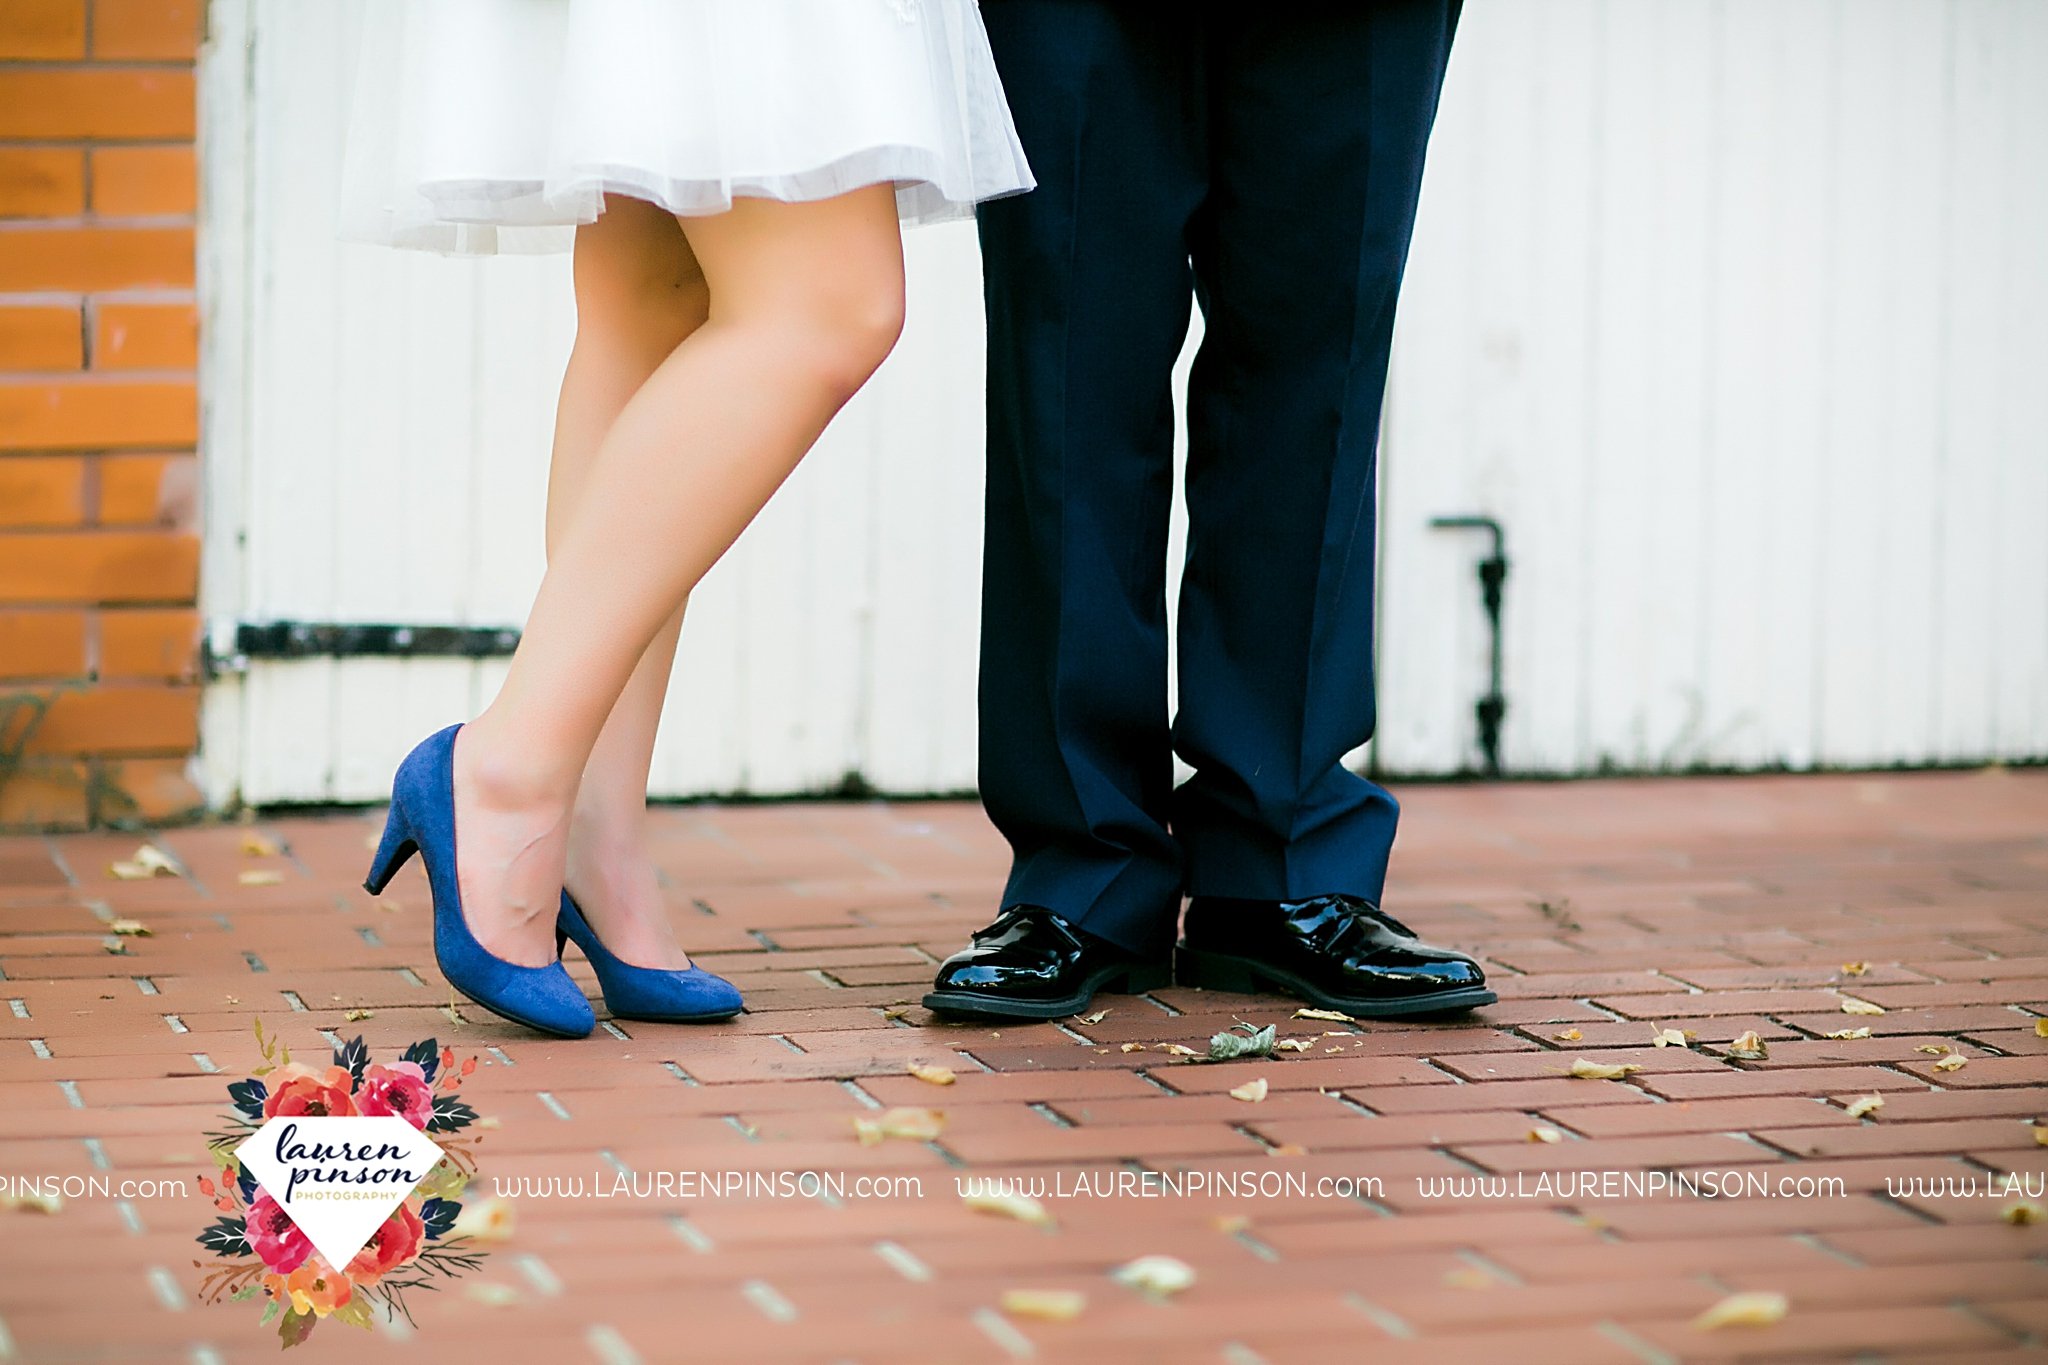 sheppard-afb-wichita-falls-texas-elopement-courthouse-wedding-photographer-justice-of-the-peace-judge-little-ceremony_3282.jpg